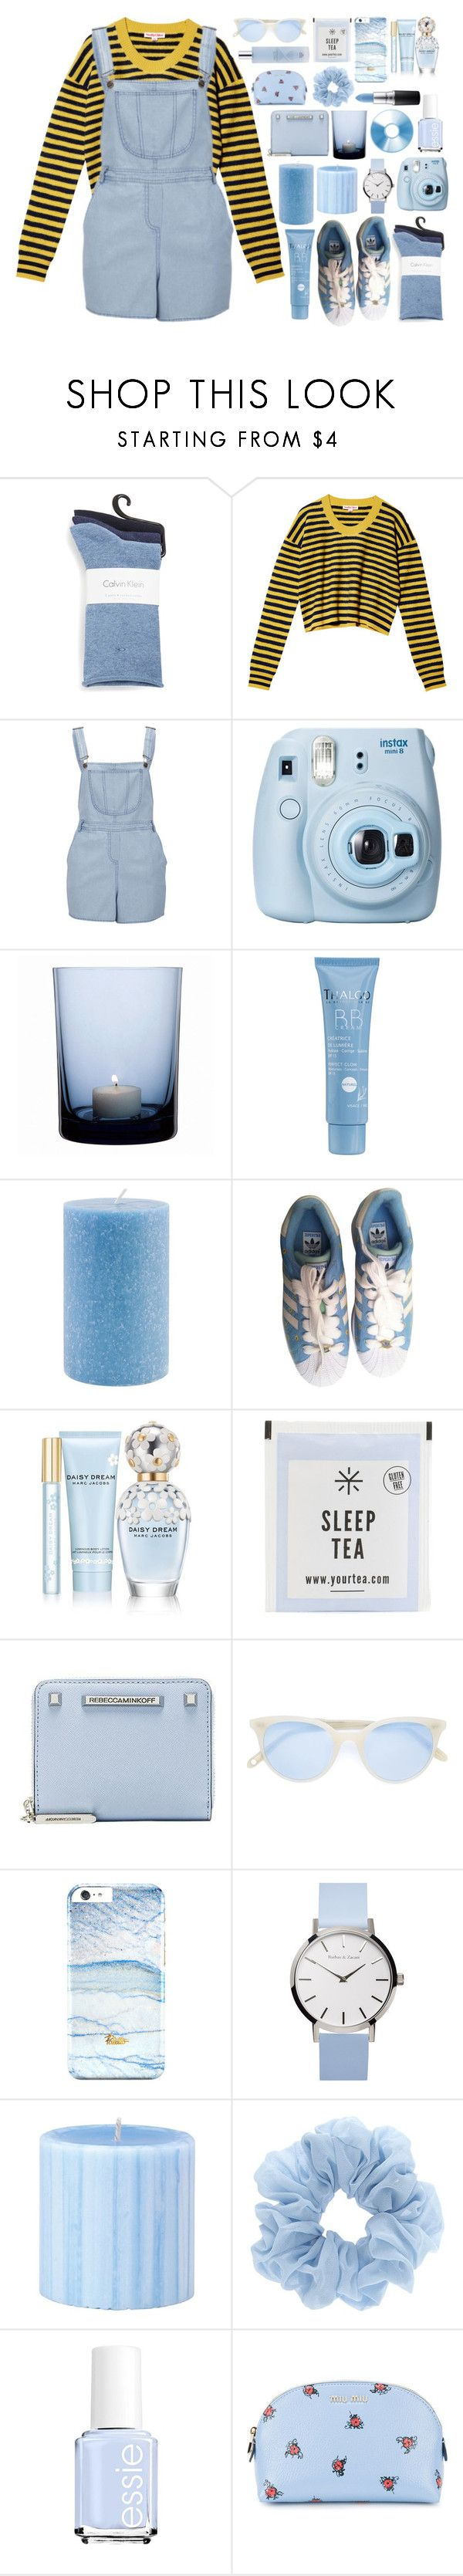 """""""Untitled #635"""" by jojomix ❤ liked on Polyvore featuring Calvin Klein, See by Chloé, Influence, Fujifilm, By Nord, Thalgo, Root Candles, adidas, Marc Jacobs and Rebecca Minkoff"""